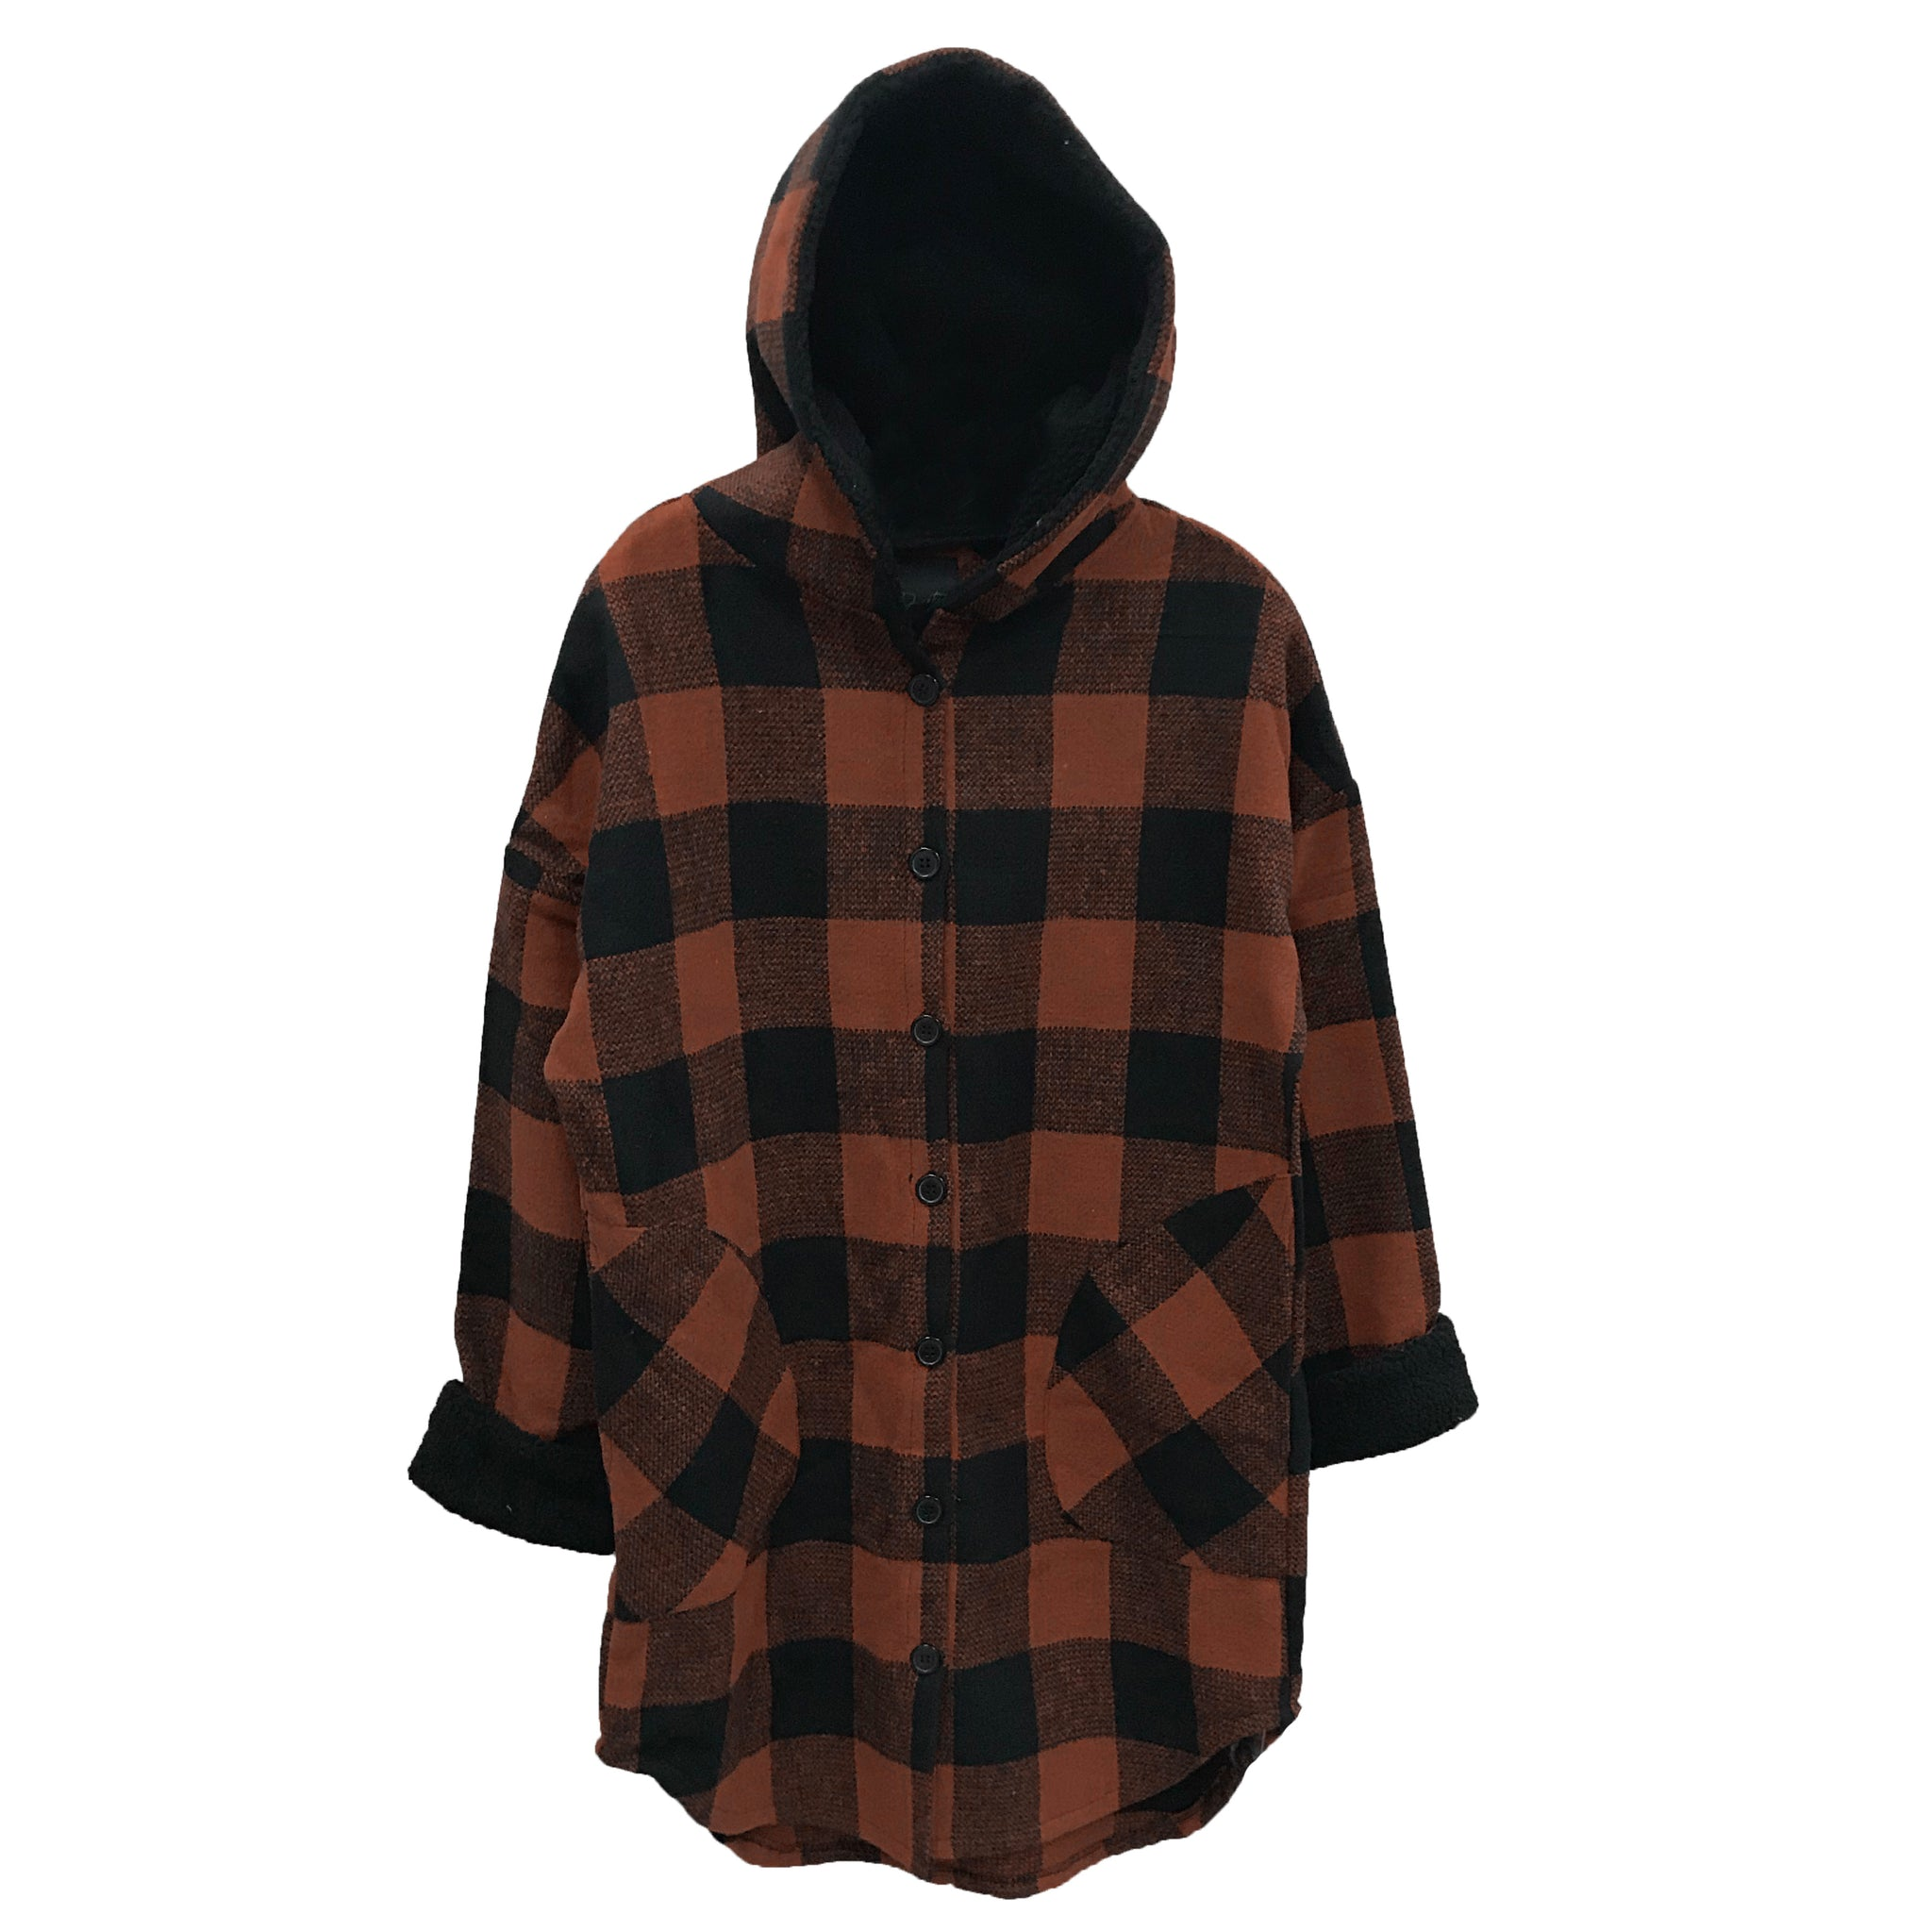 RD INTERNATIONAL LADIES WOVEN COGNAC HOODED JACKET